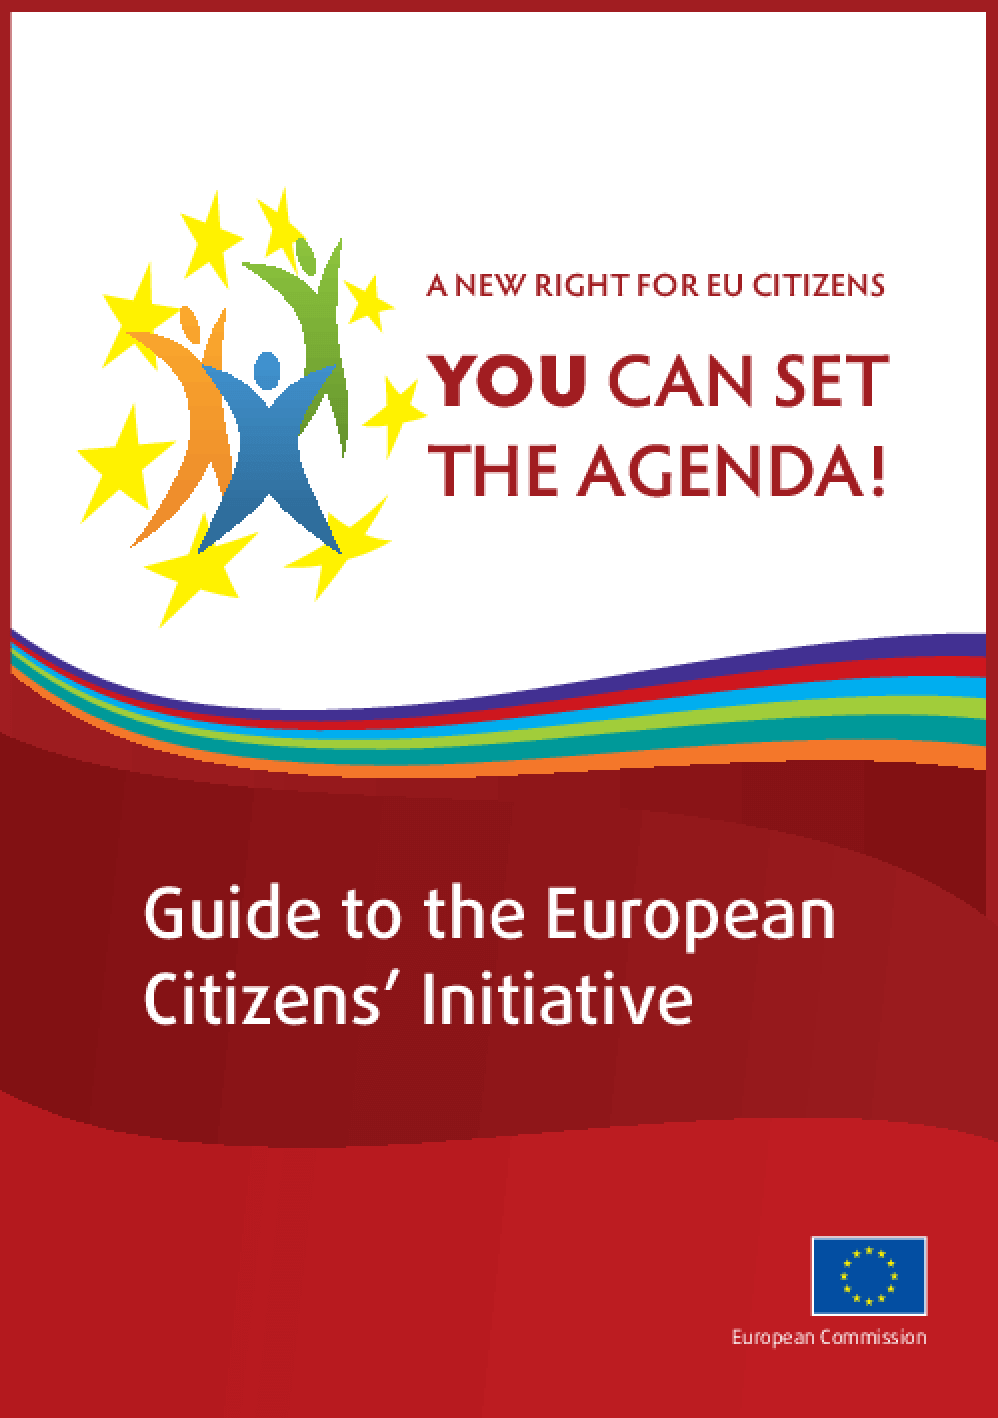 A New Right for EU Citizens: You Can Set the Agenda - Guide to the European Citizen's Initiative